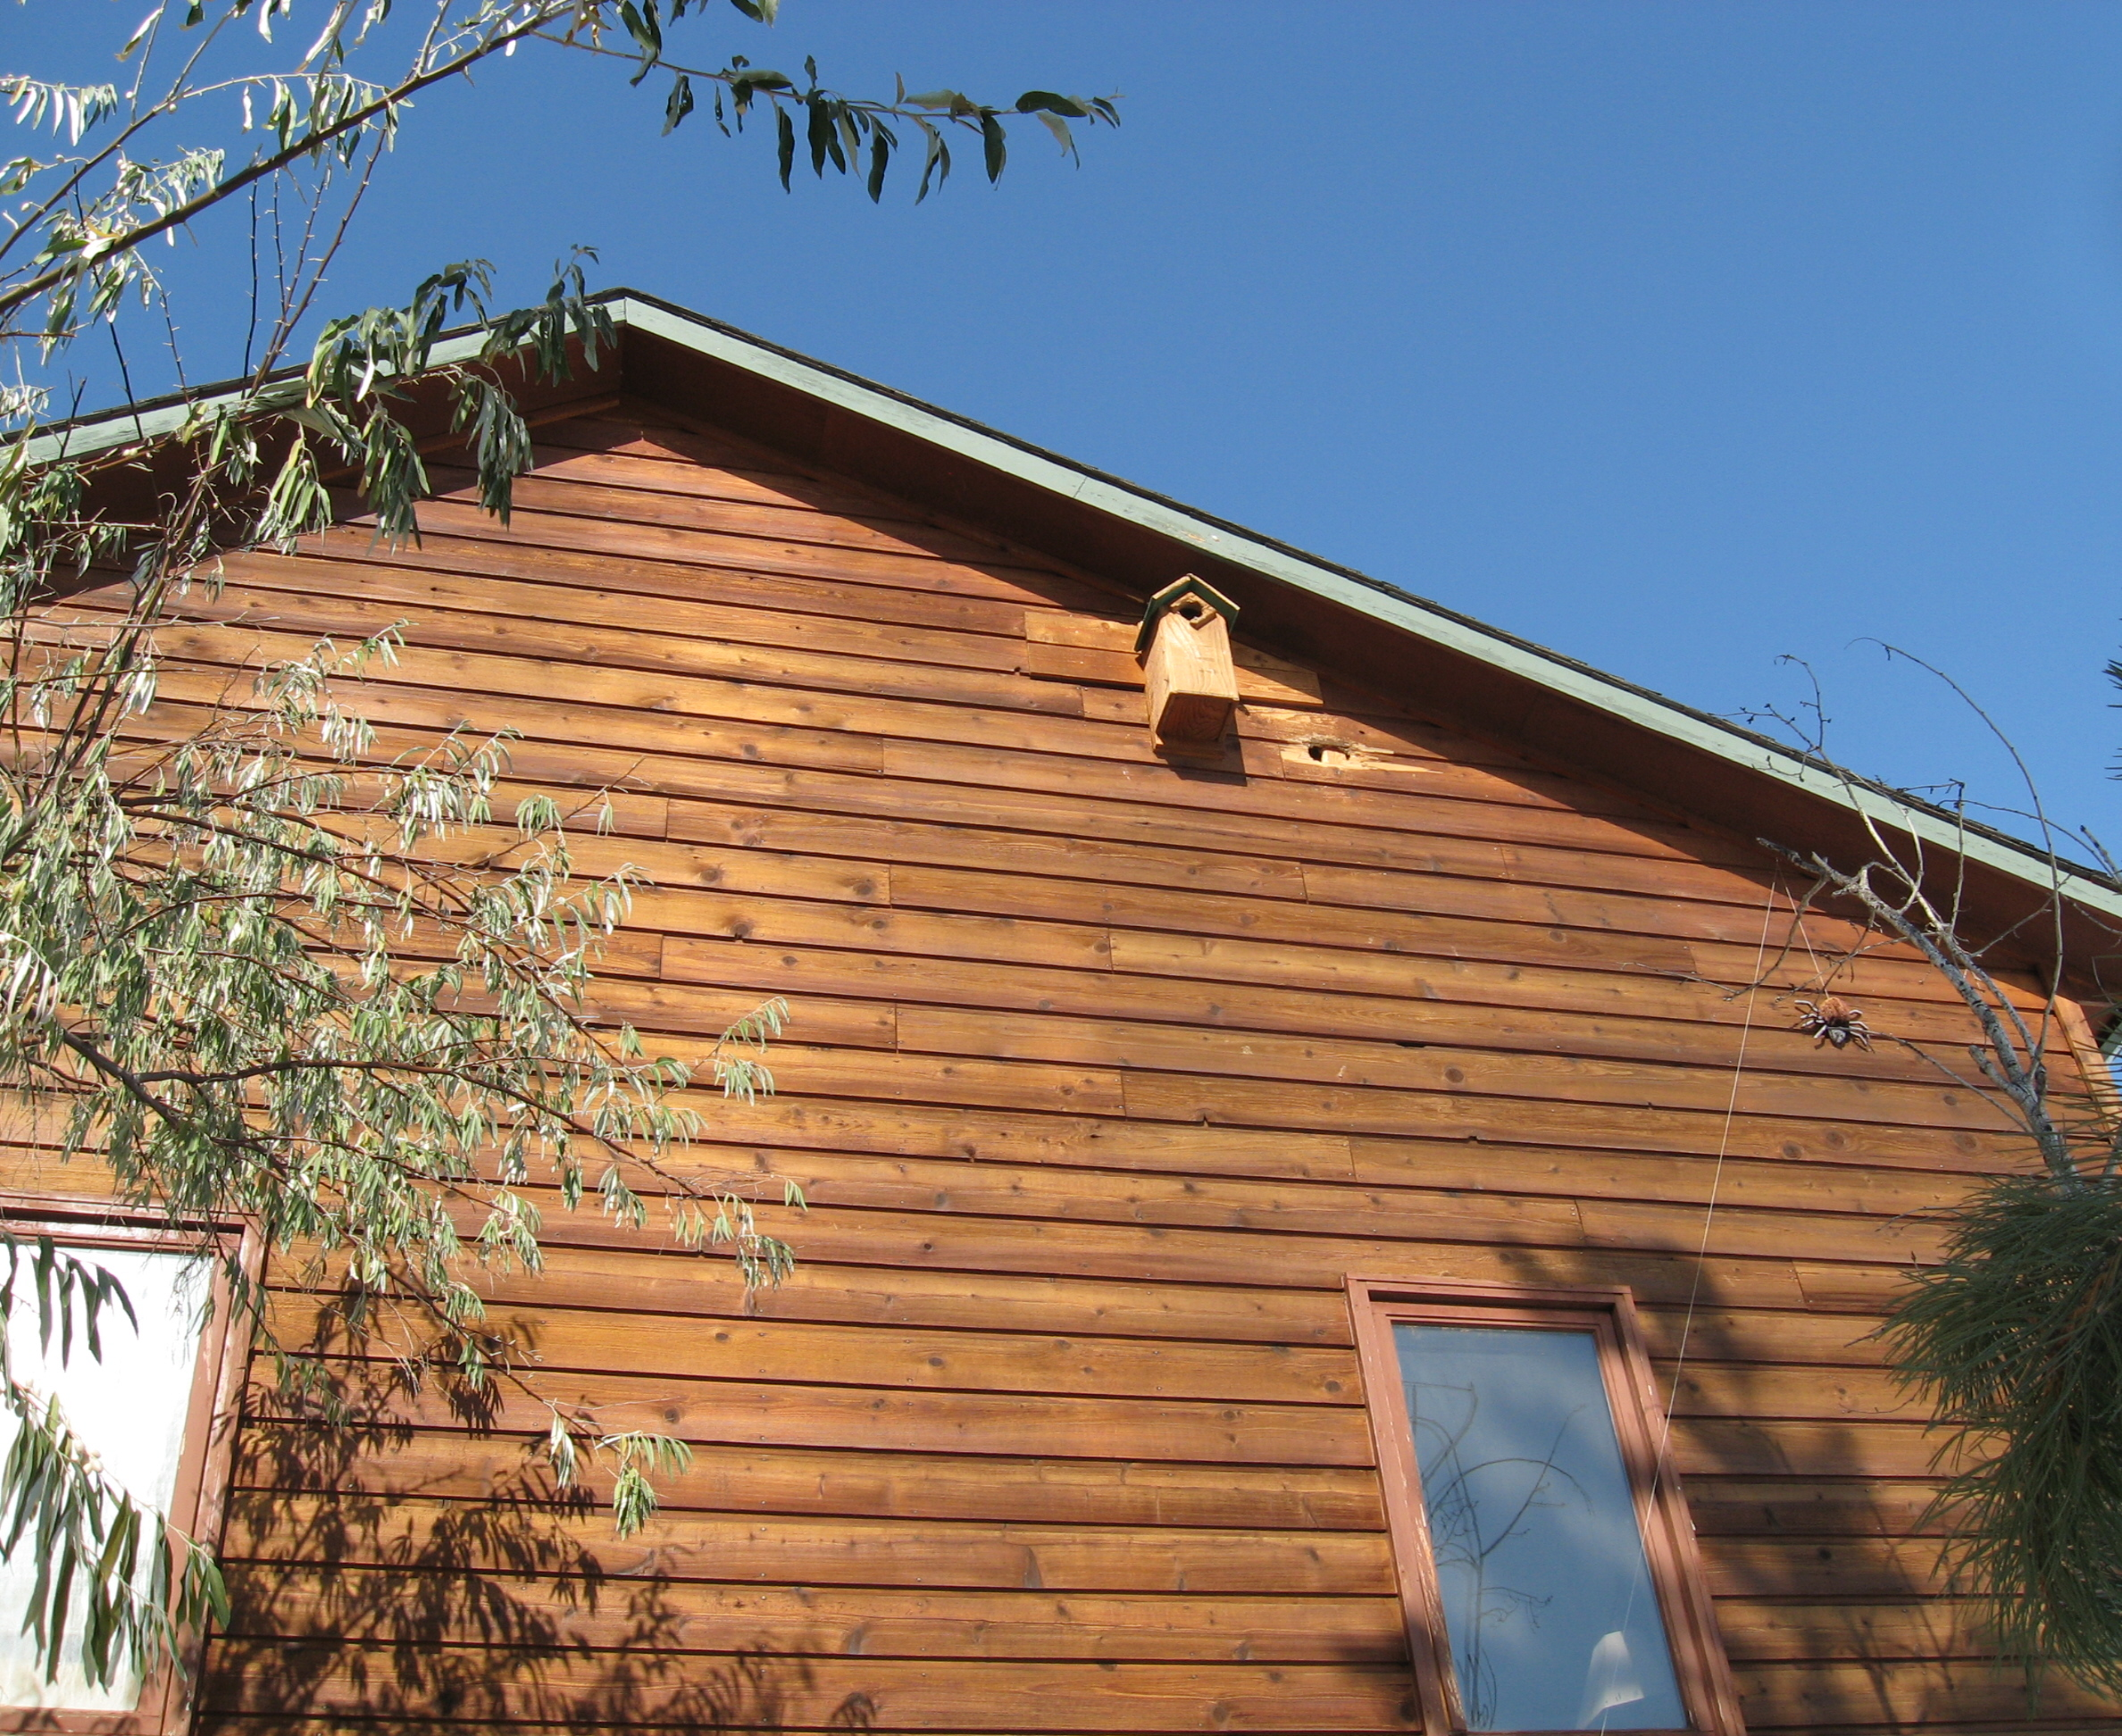 residential painting in boulder has deterrents - eco paint, inc.